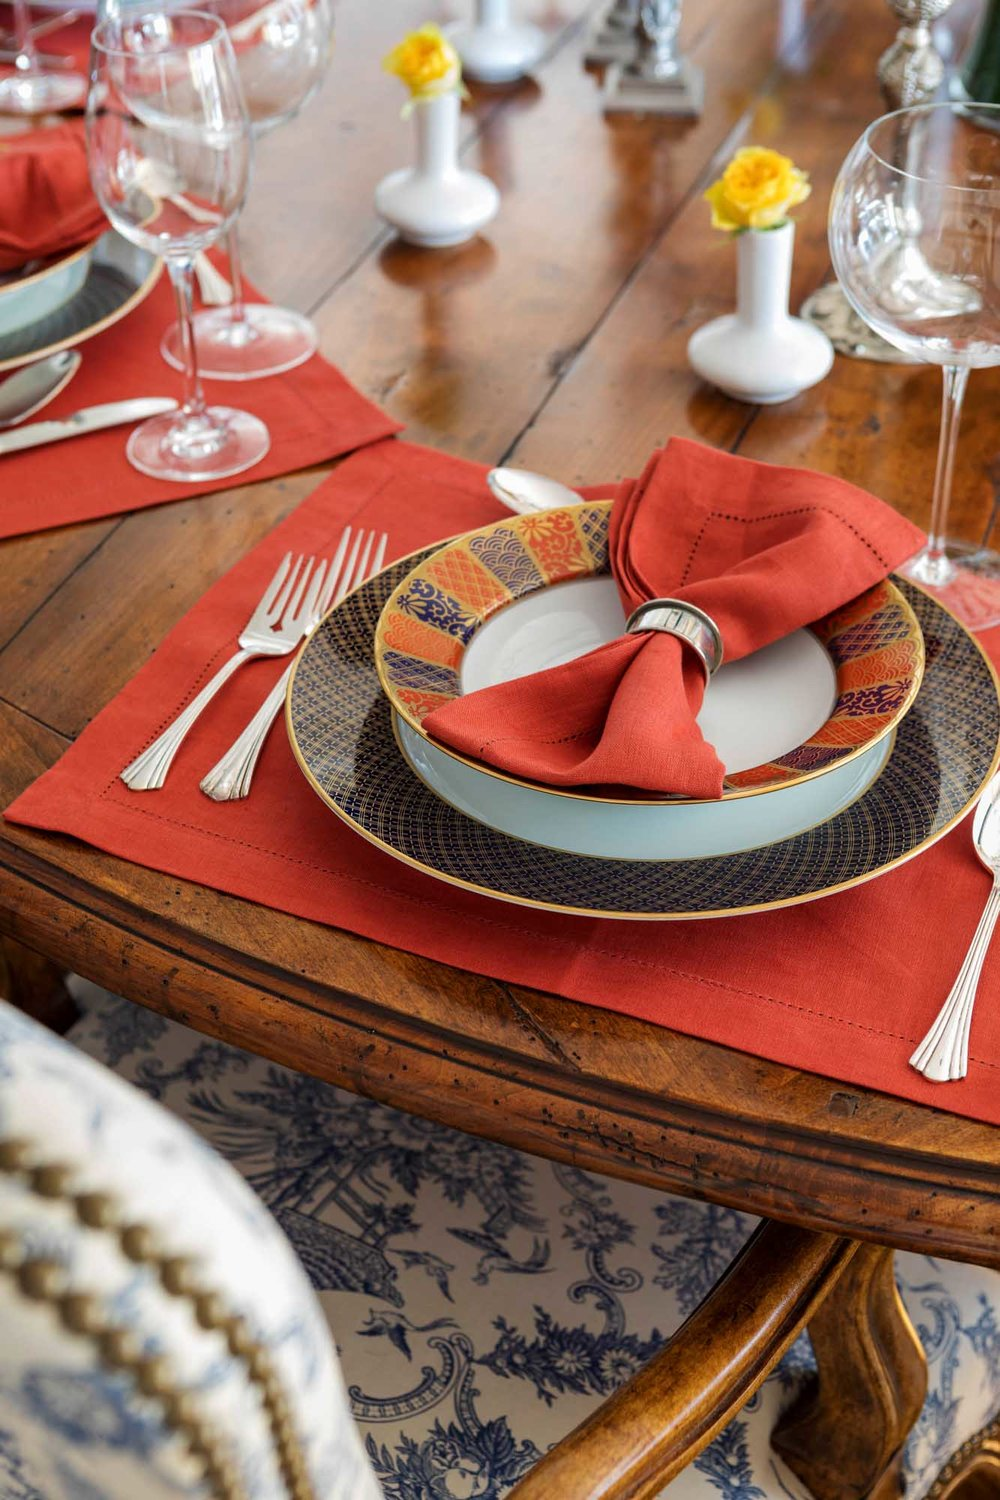 Red place settings on wooden dining table